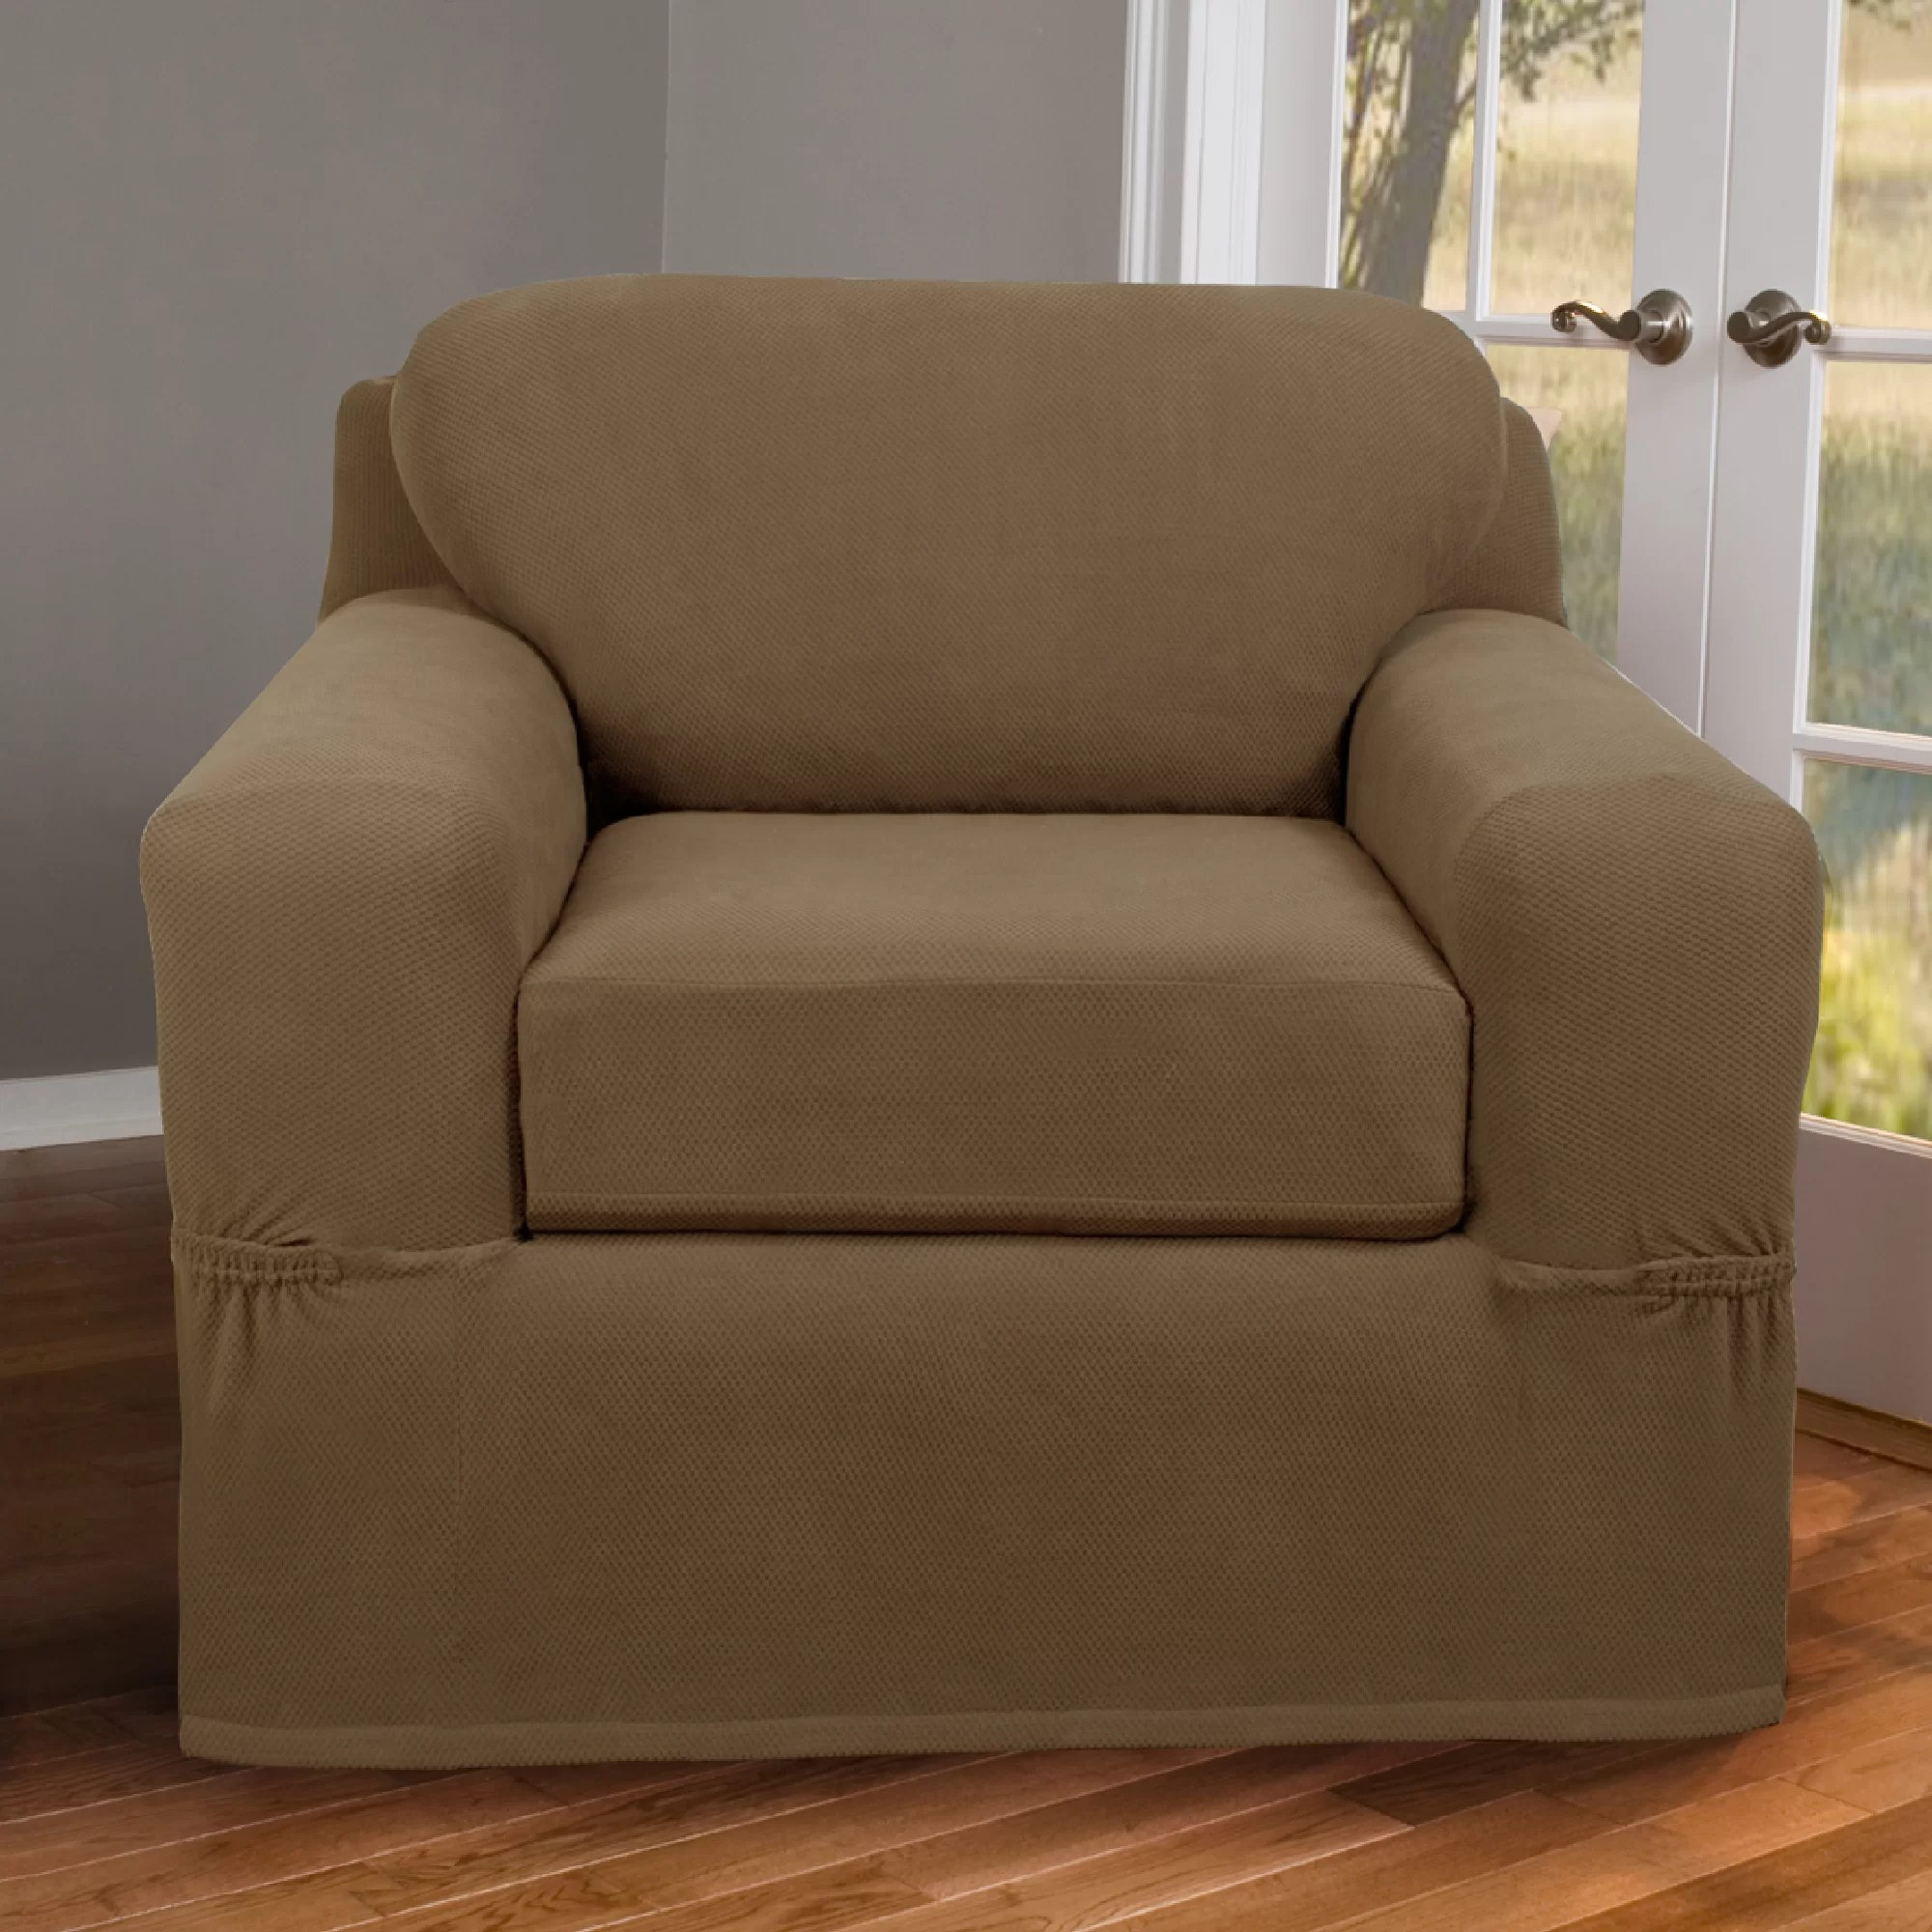 boxed chair cushions sitting down exercises maytex pixel stretch 2 piece box cushion slipcover